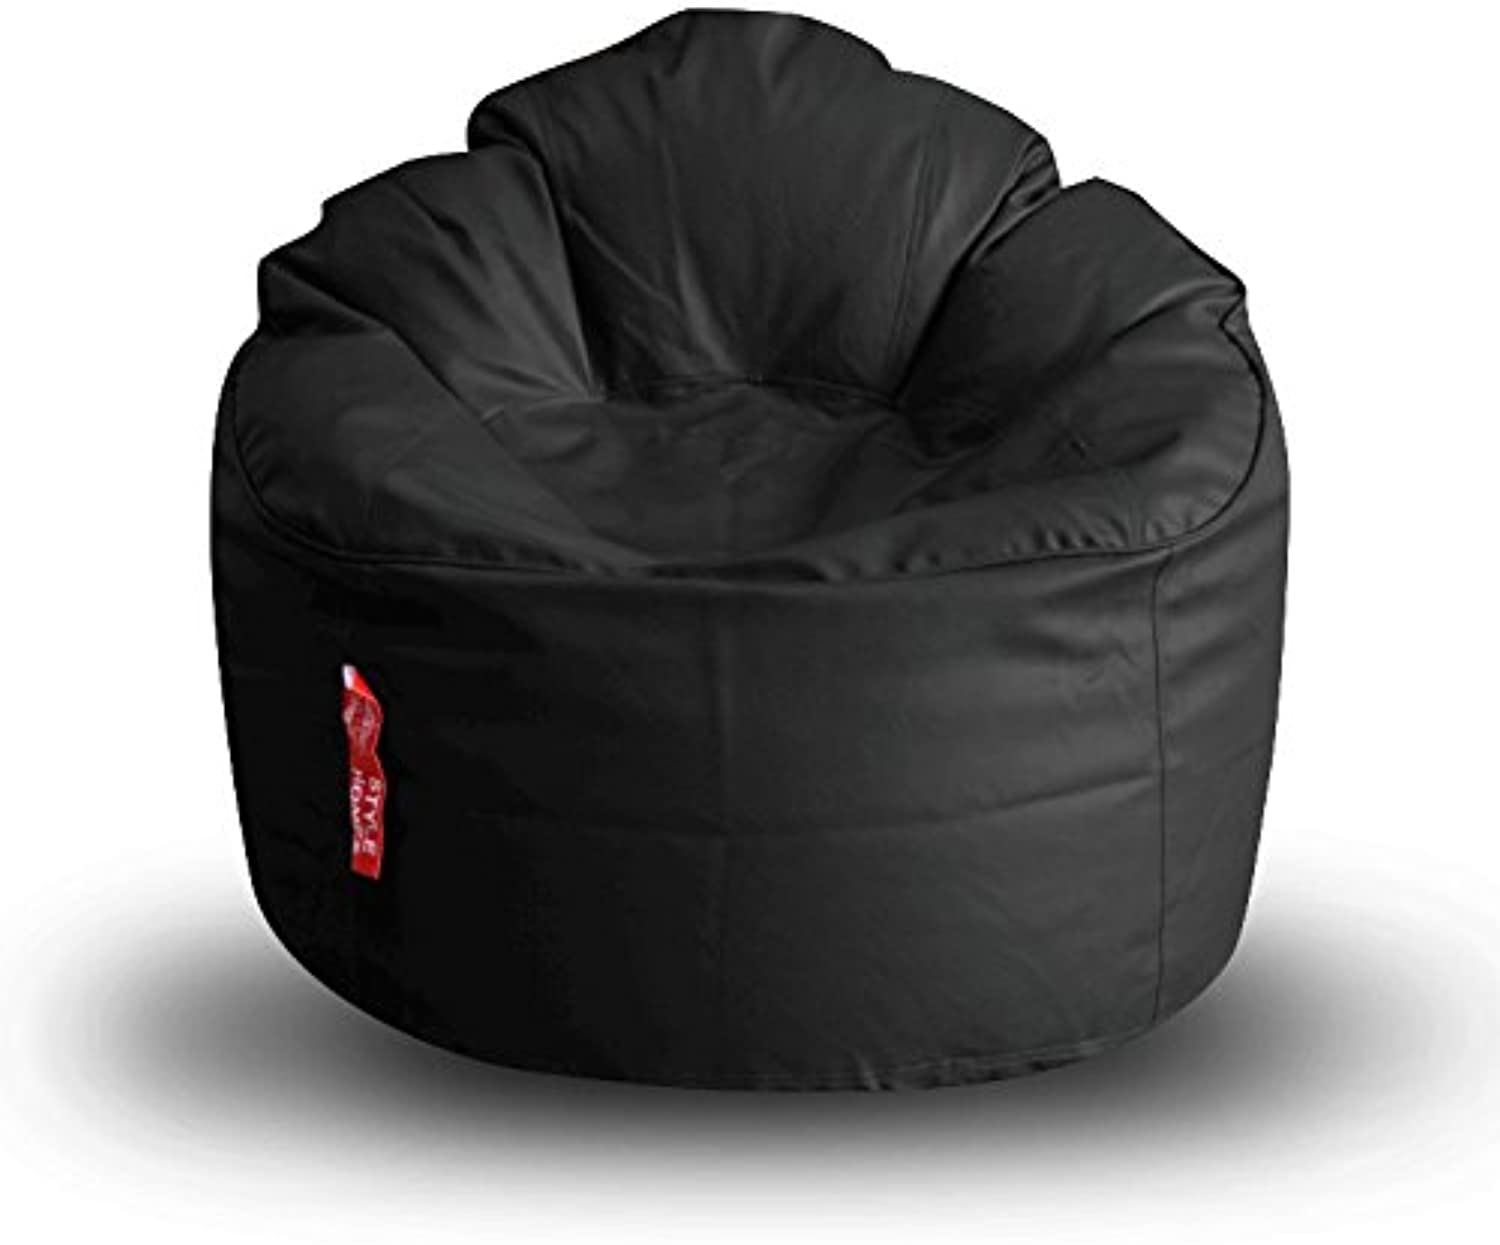 Style Homez Modern Mooda Rocker XXXL Size Black color Cover Only